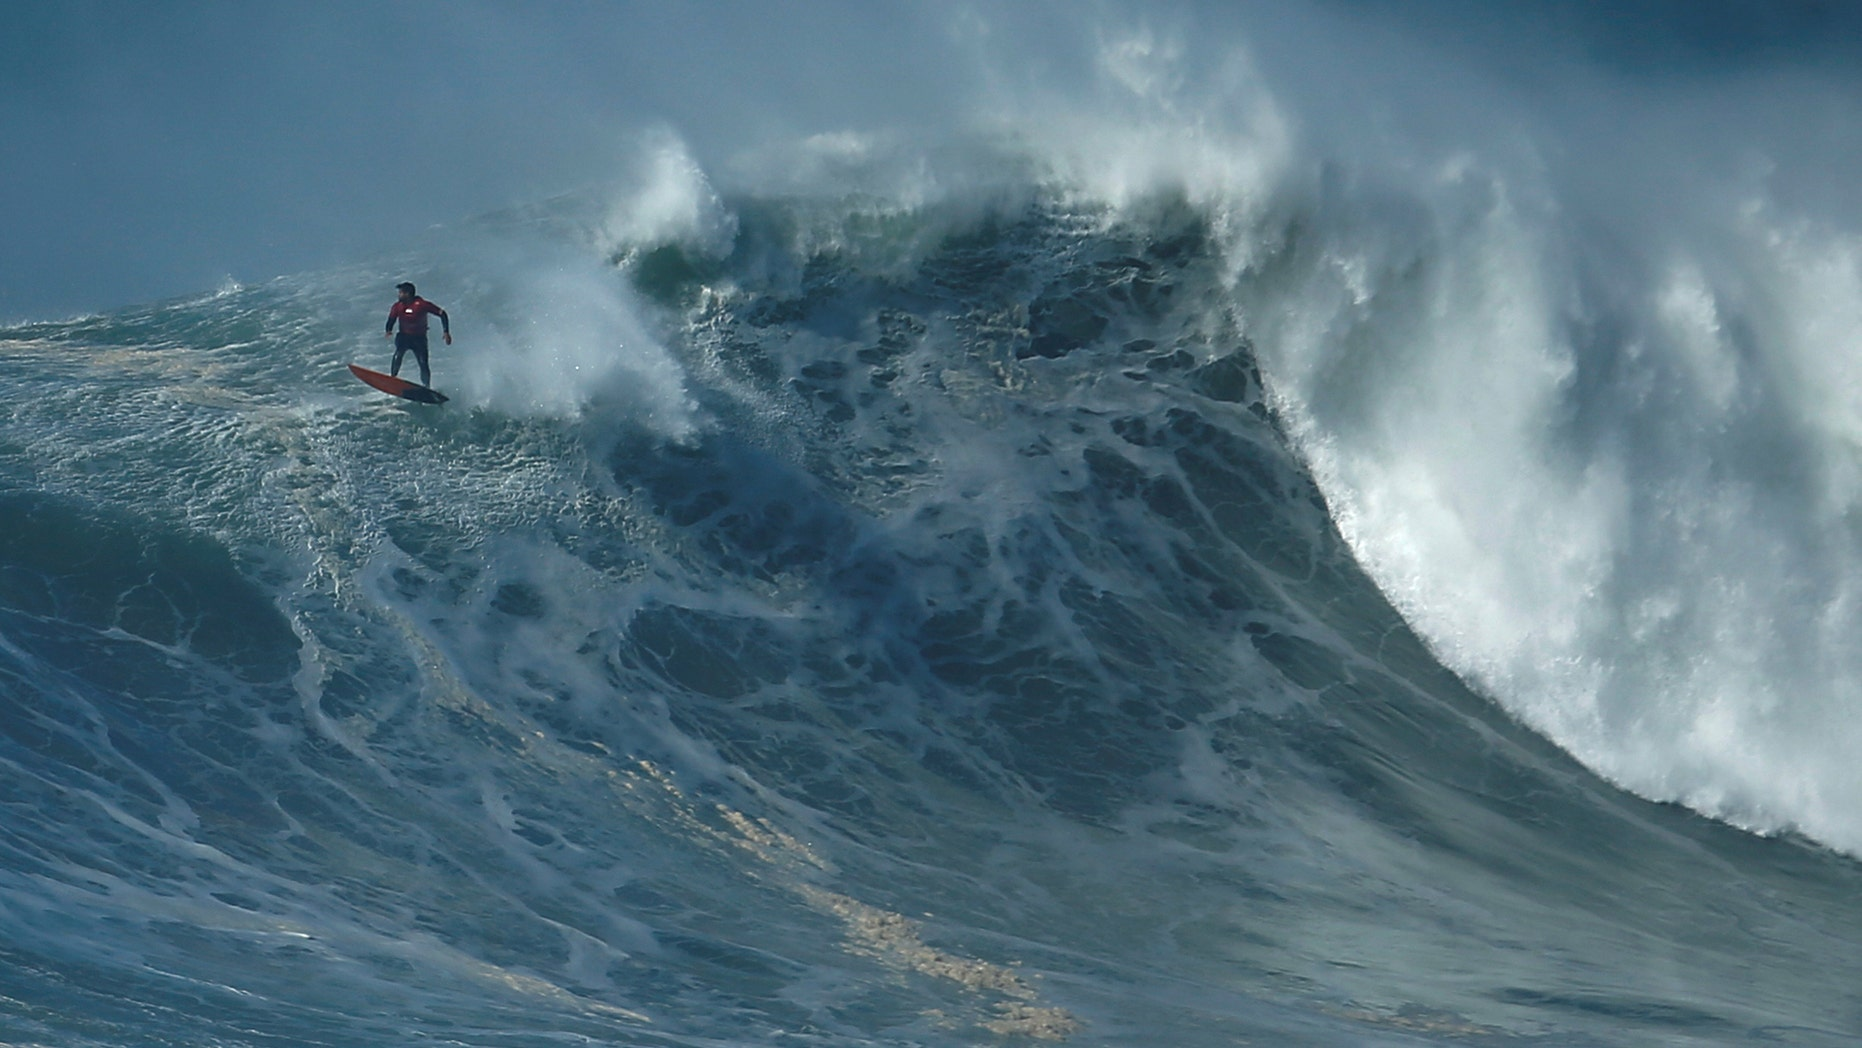 File photo: A surfer drops in on a large wave at Praia do Norte in Nazare, Portugal, February 10, 2017.  (REUTERS/Rafael Marchante )